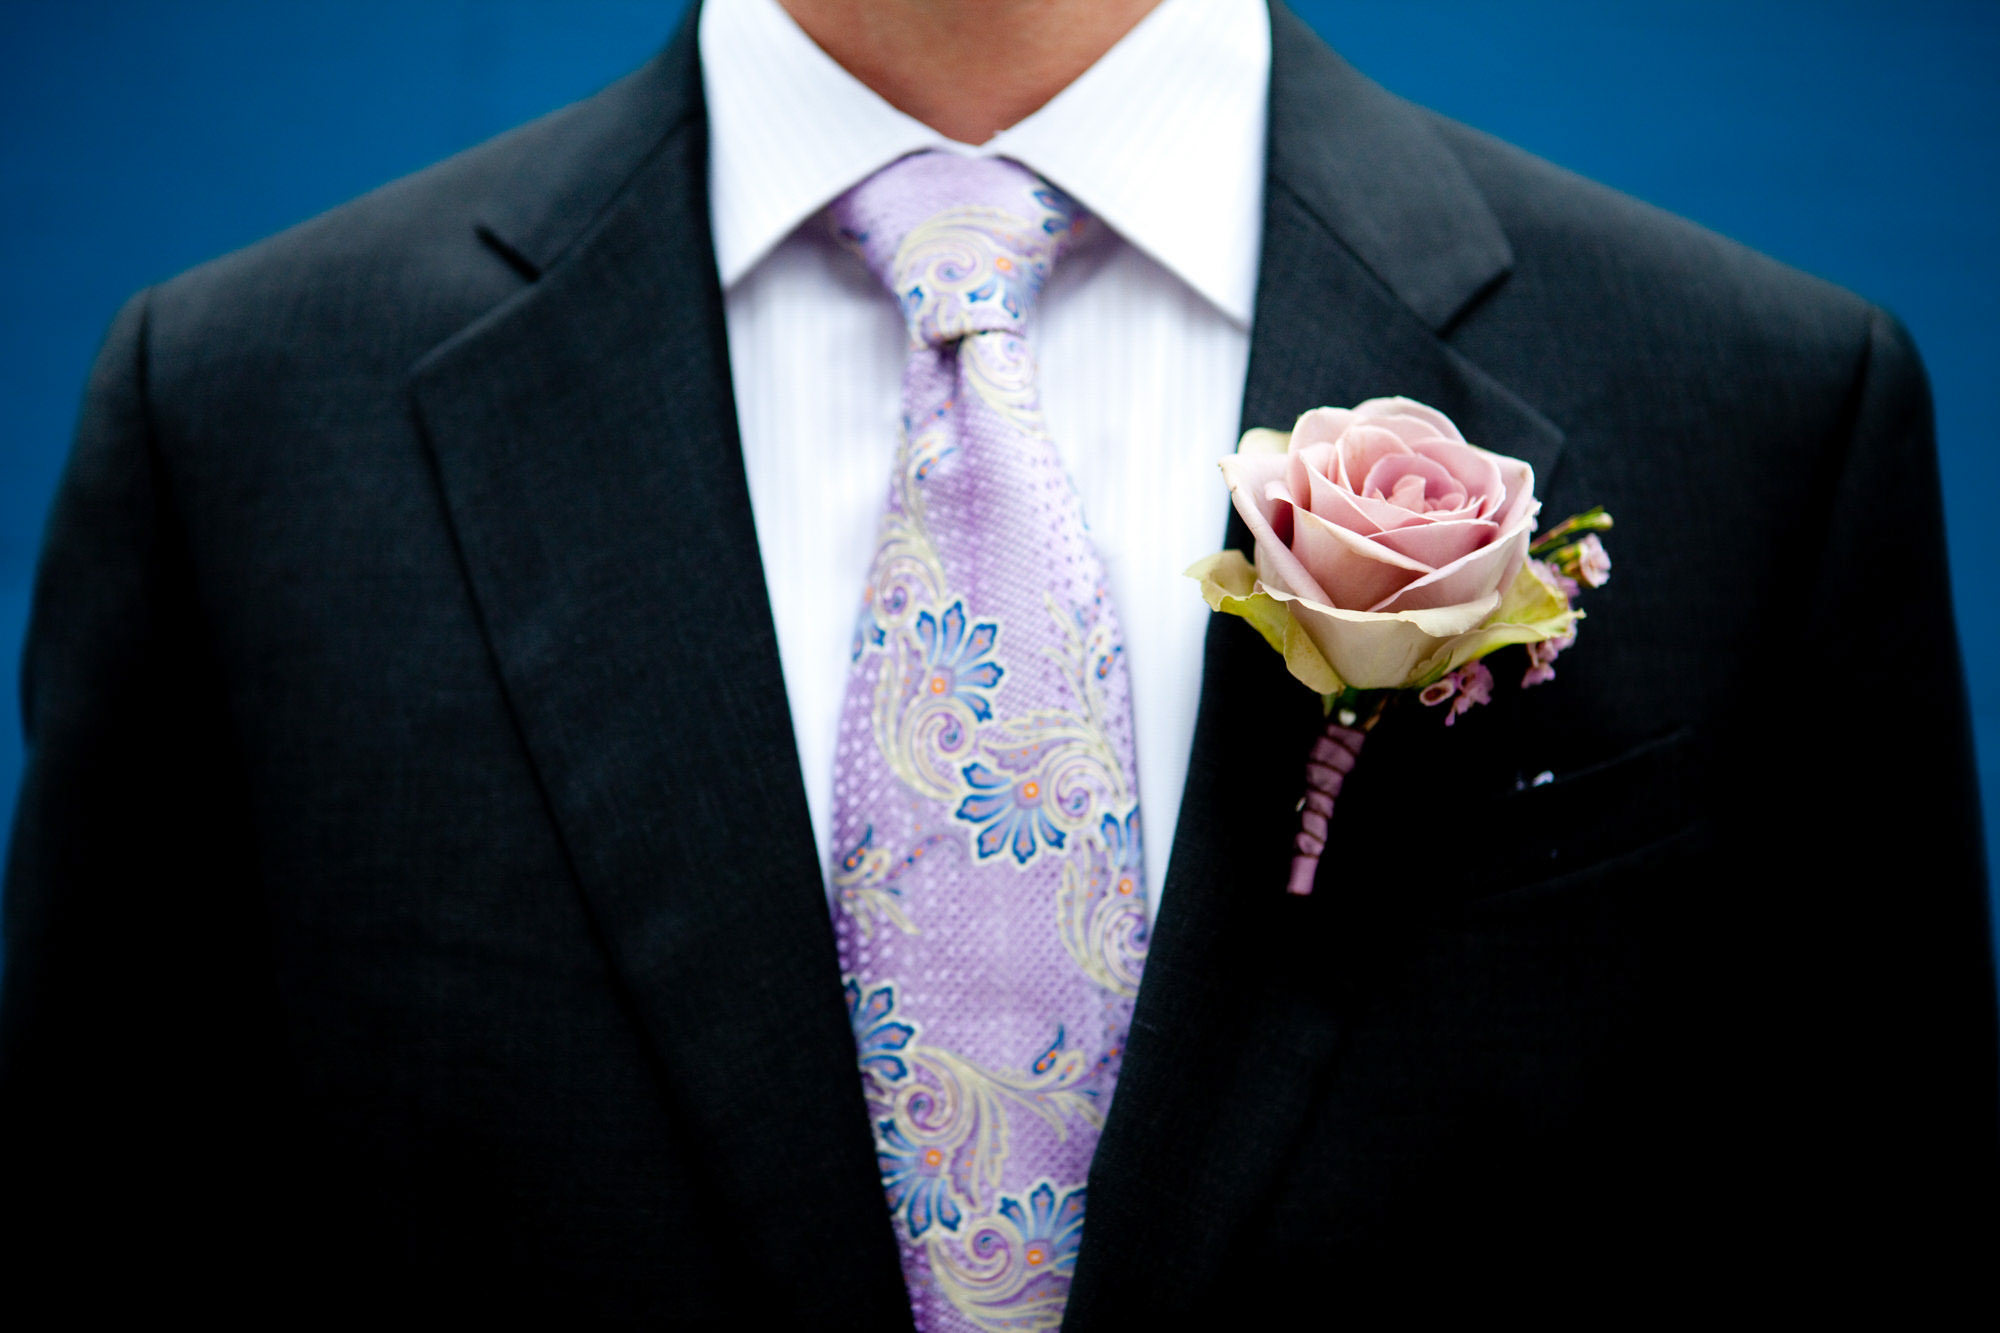 Groom with purple floral tie and pink rose boutonniere - La Vie Photography